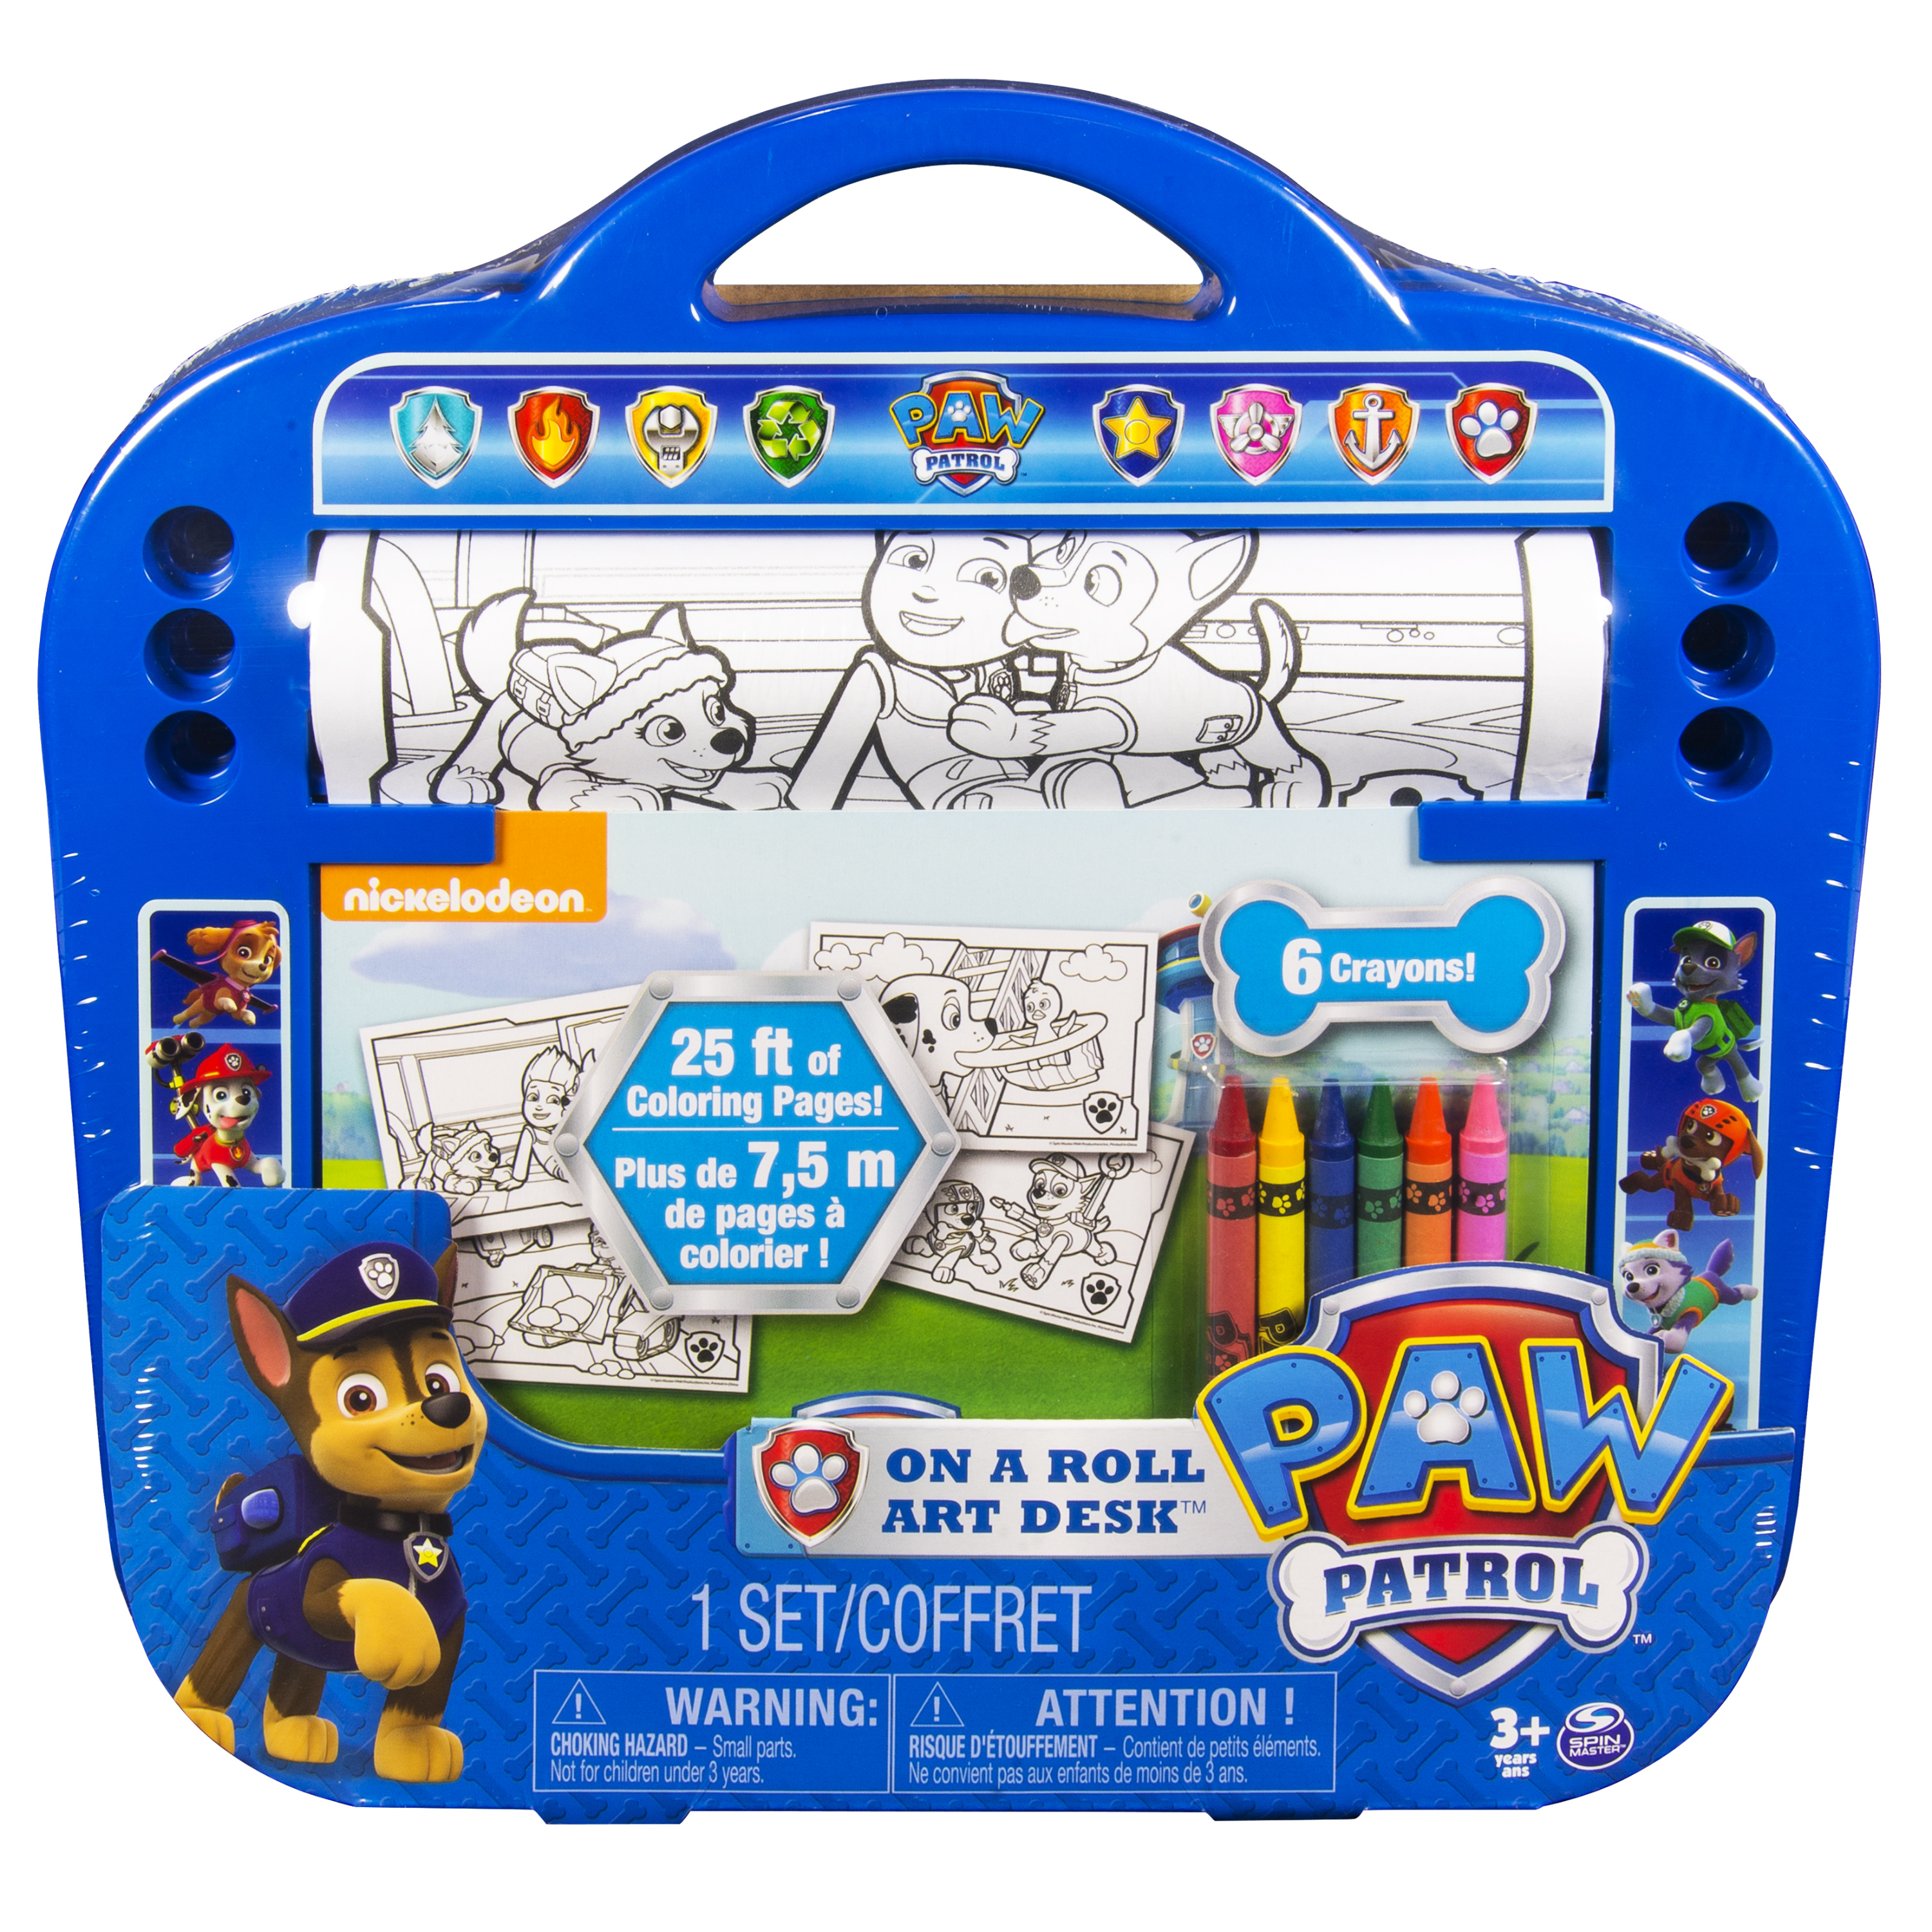 Paw Patrol - Activities - On A Roll Art Desk